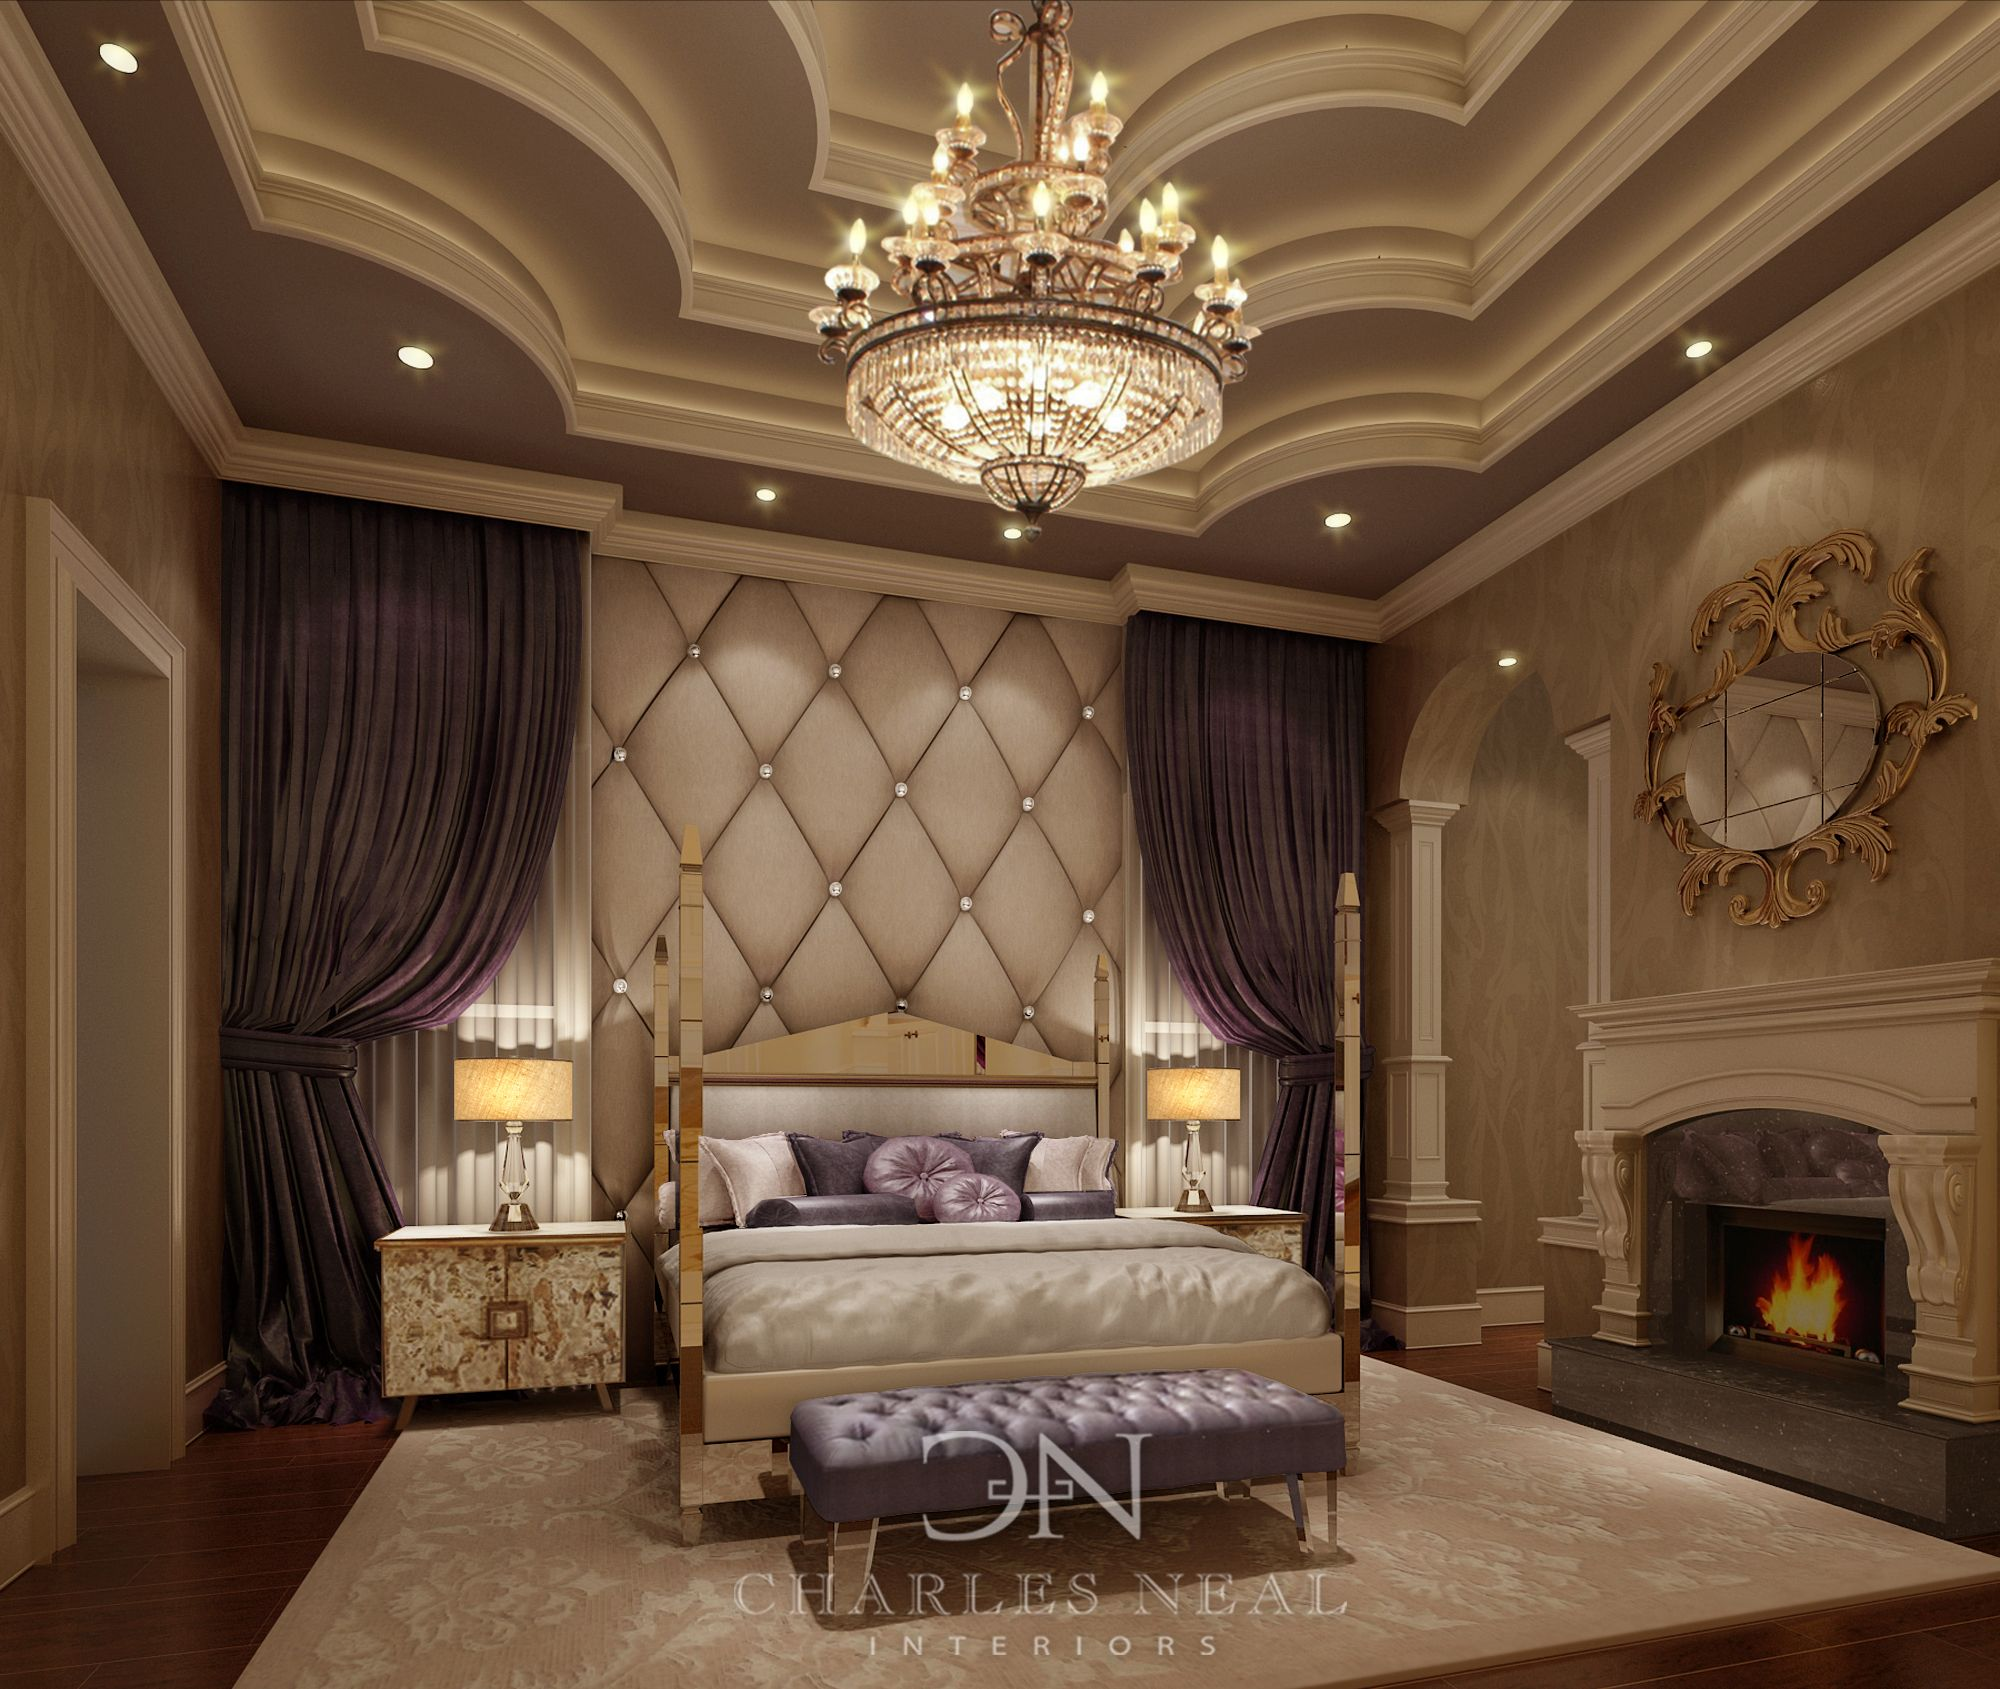 Castle master bedroom - Luxurious Master Bedroom By Charles Neal Interior